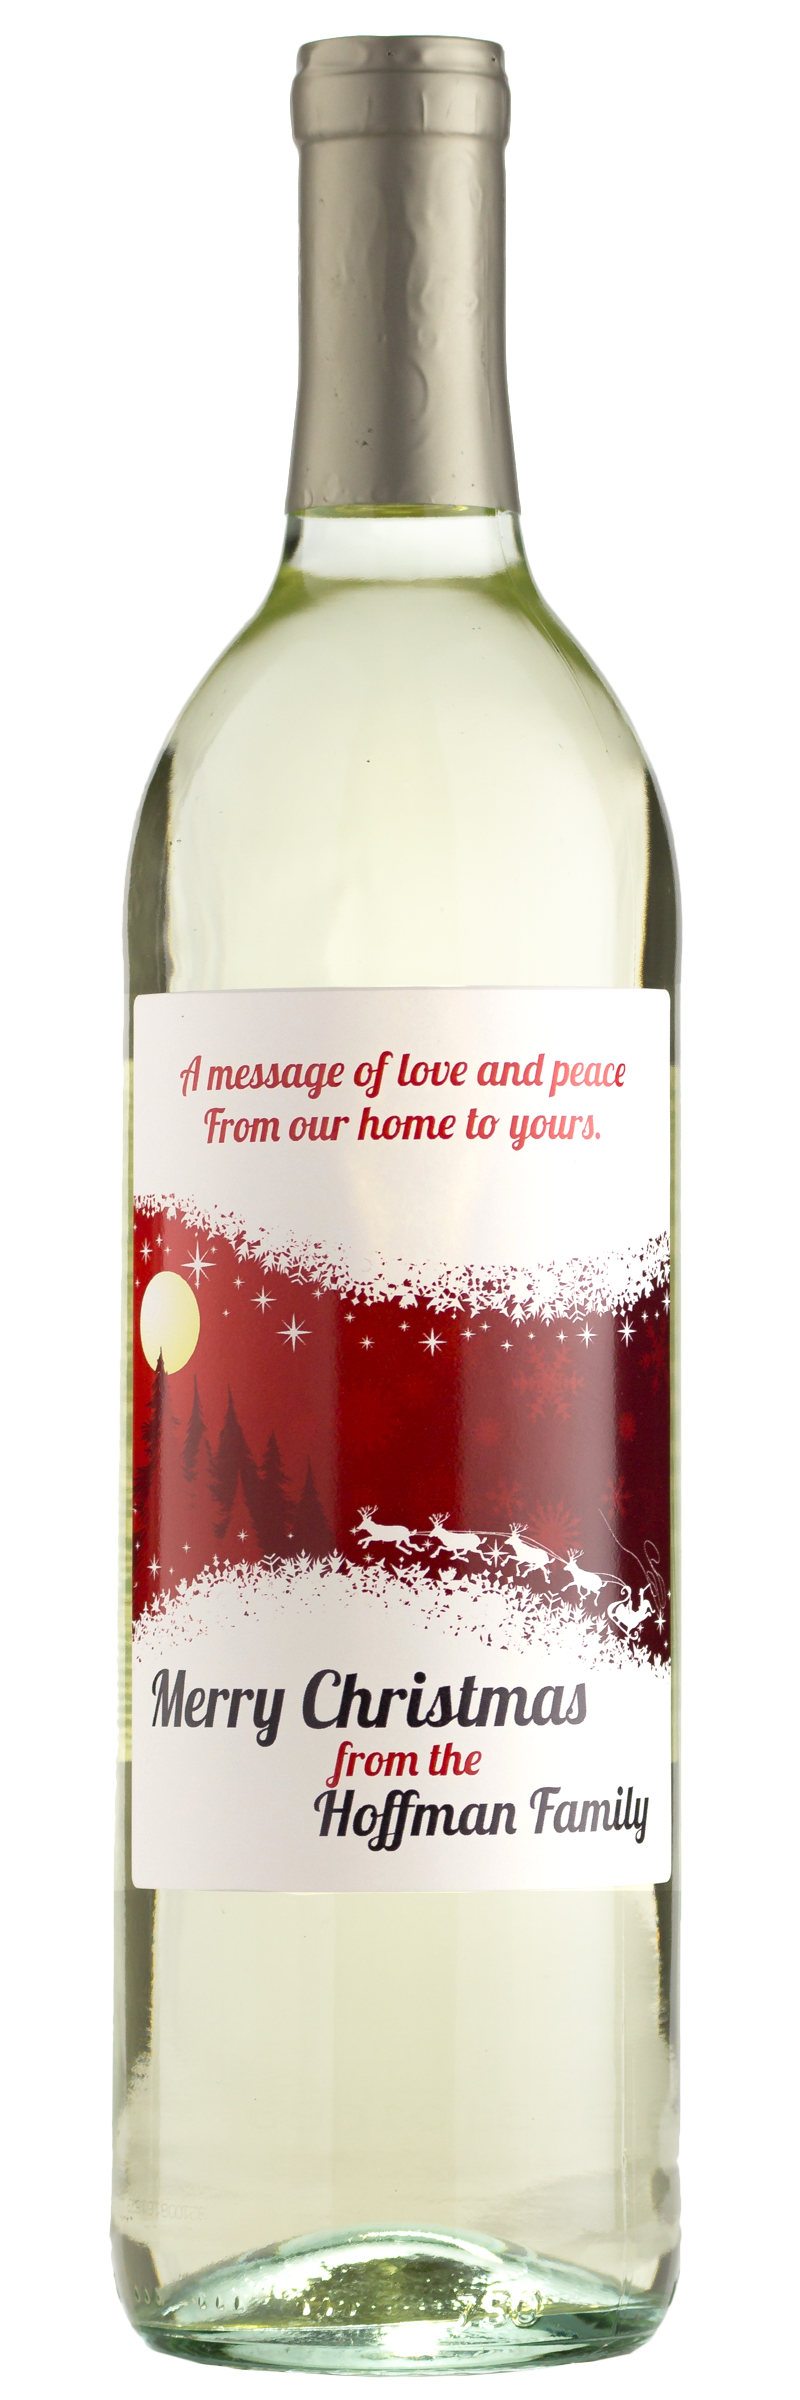 f264dbe994c Wine Christmas Gifts For Wine Lovers | Personal Wine